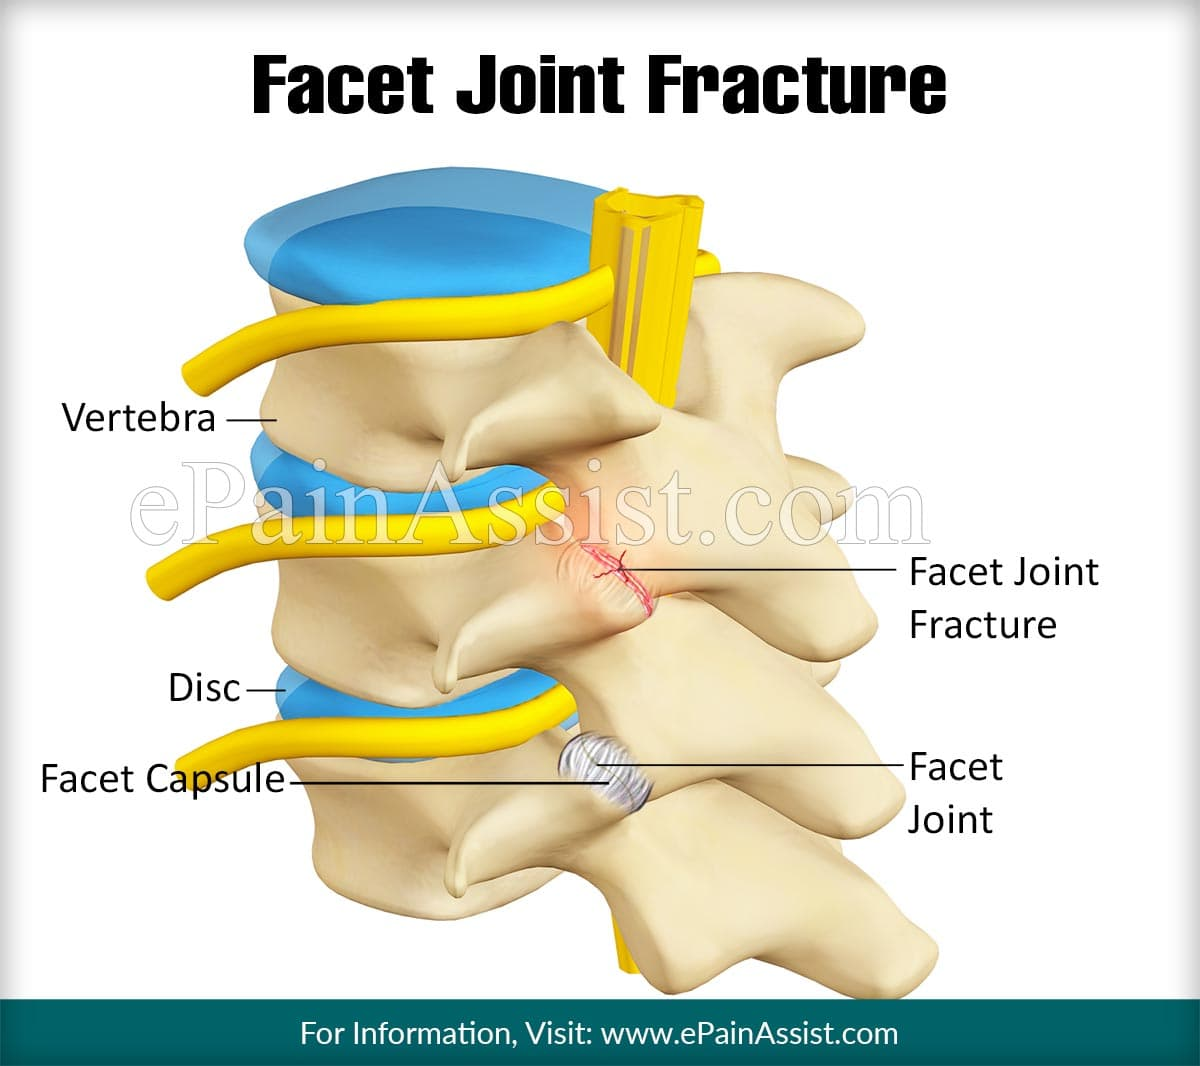 Facet Joint Fracture